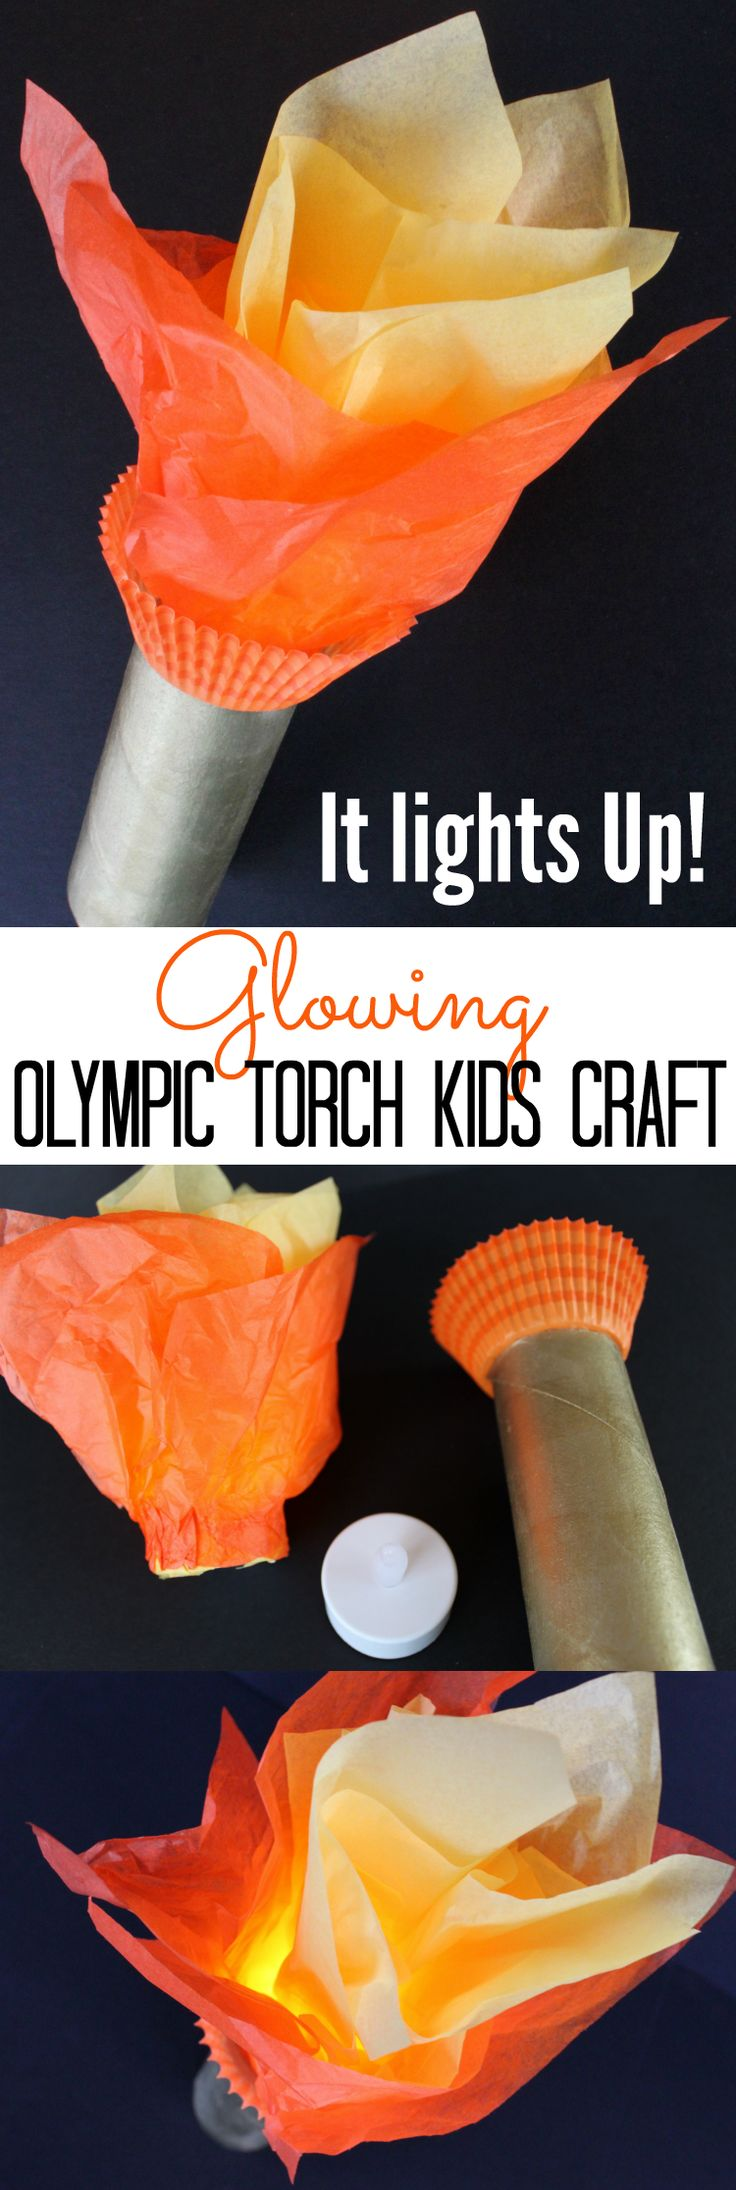 IT LIGHTS UP! Glowing Tealight Olympic Torch Kids Craft for the Summer Olympics and Winter Olympics games - A great toilet paper roll craft for kids to hold during the Olympic Opening Ceremony! Popular pins from OHMY-CREATIVE.COM